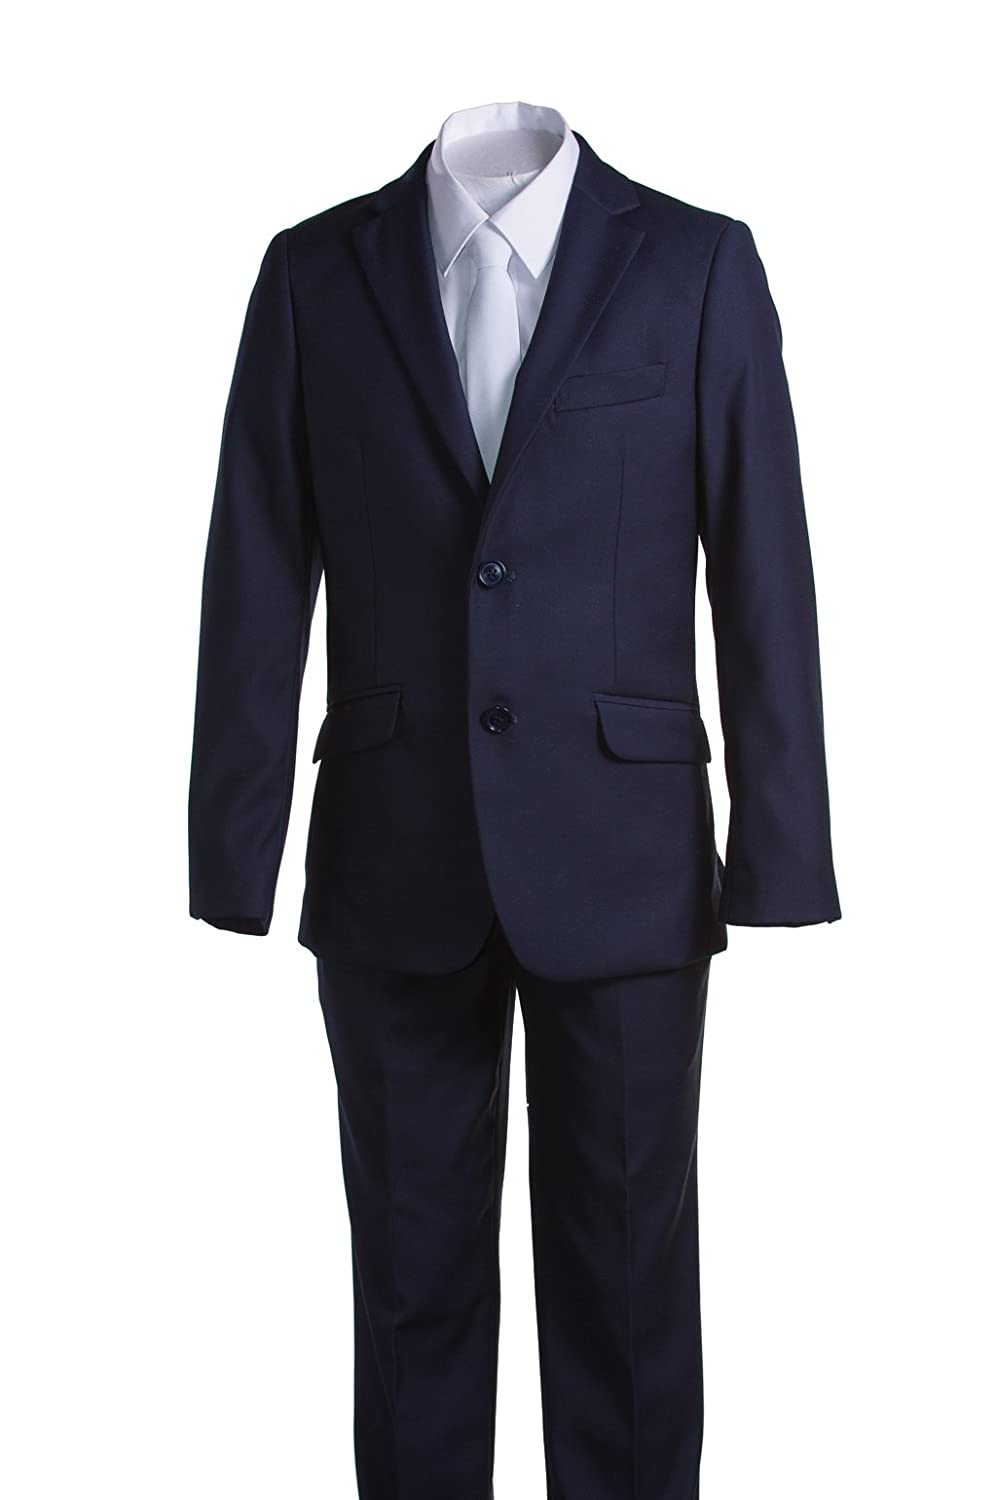 Boys Slim Fit Communion Suit Navy Blue with Suspenders & White Tie